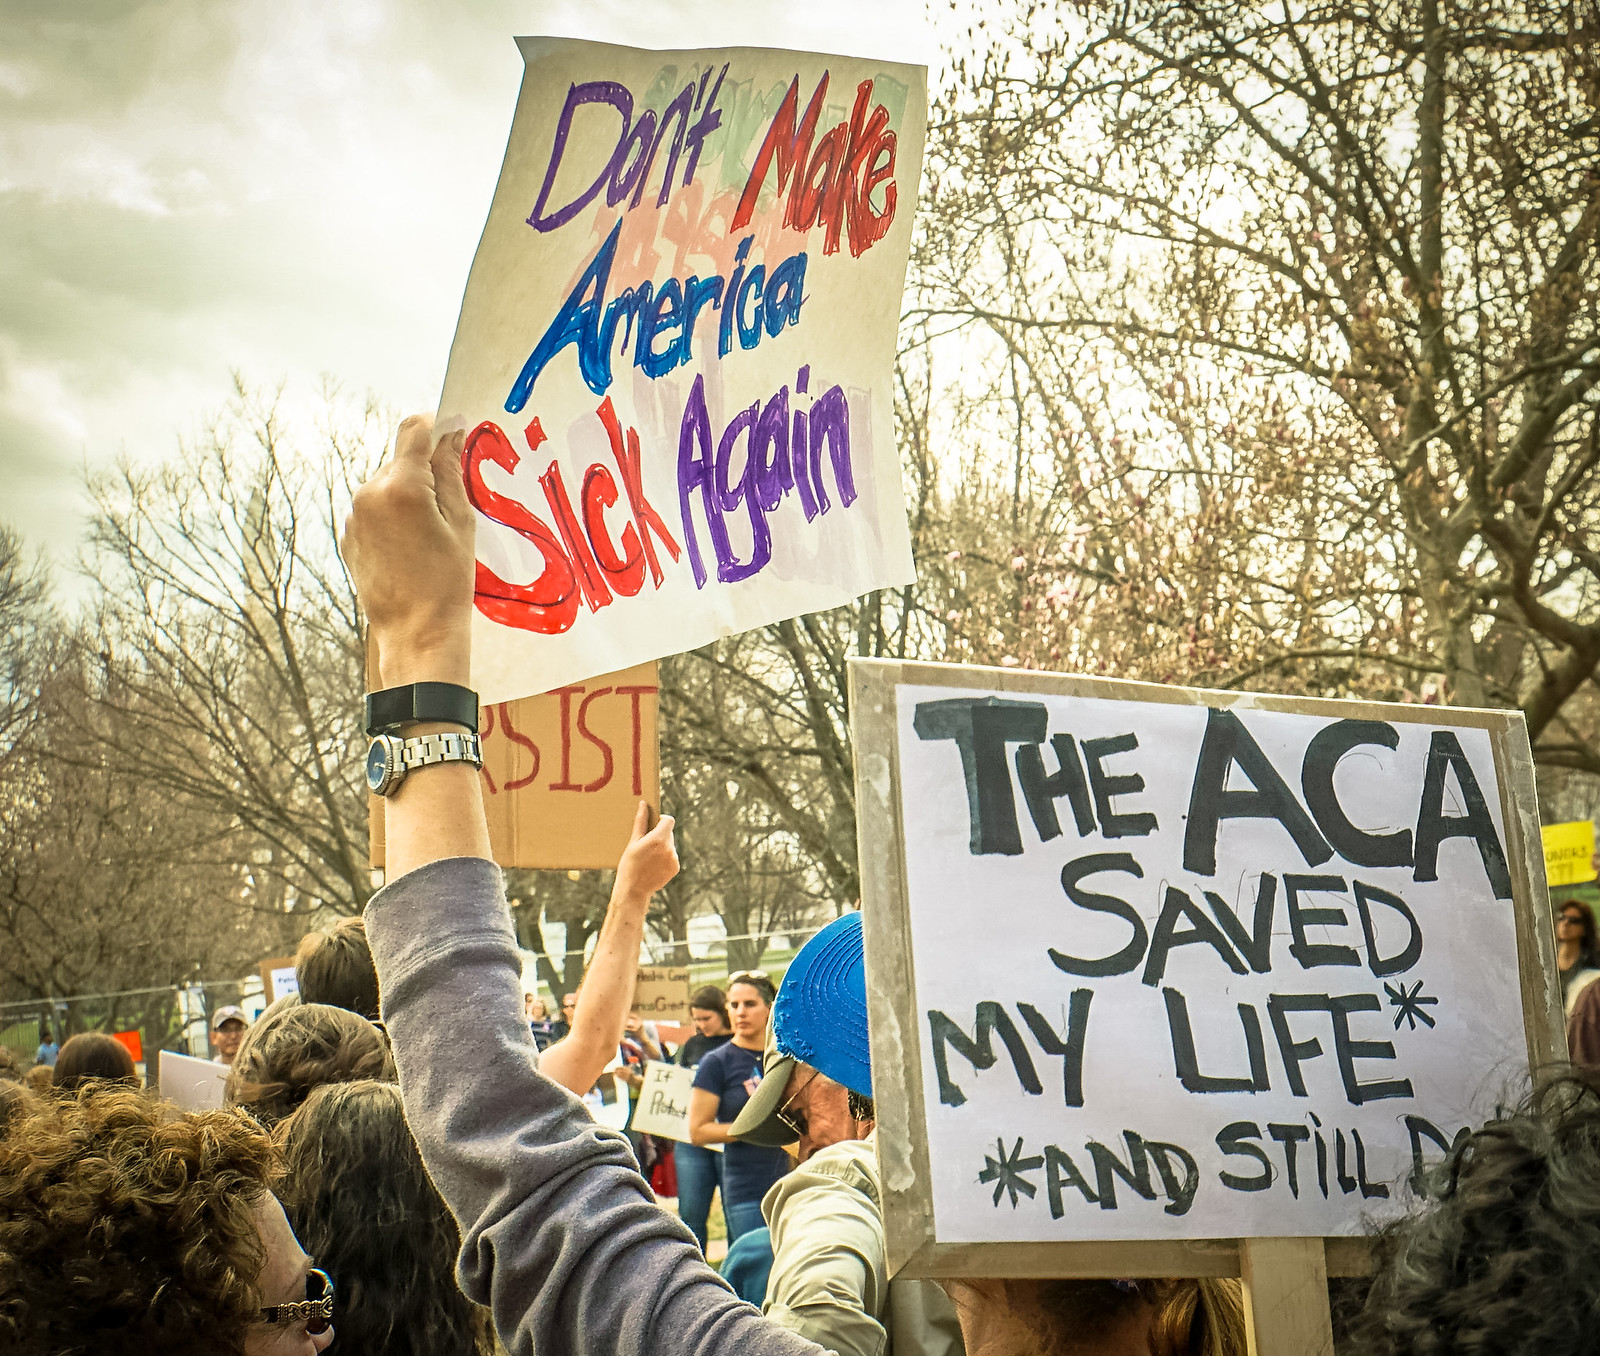 2017.02.25 Rally in Support of Affordable Care Act #ACA Washington, DC USA 01248